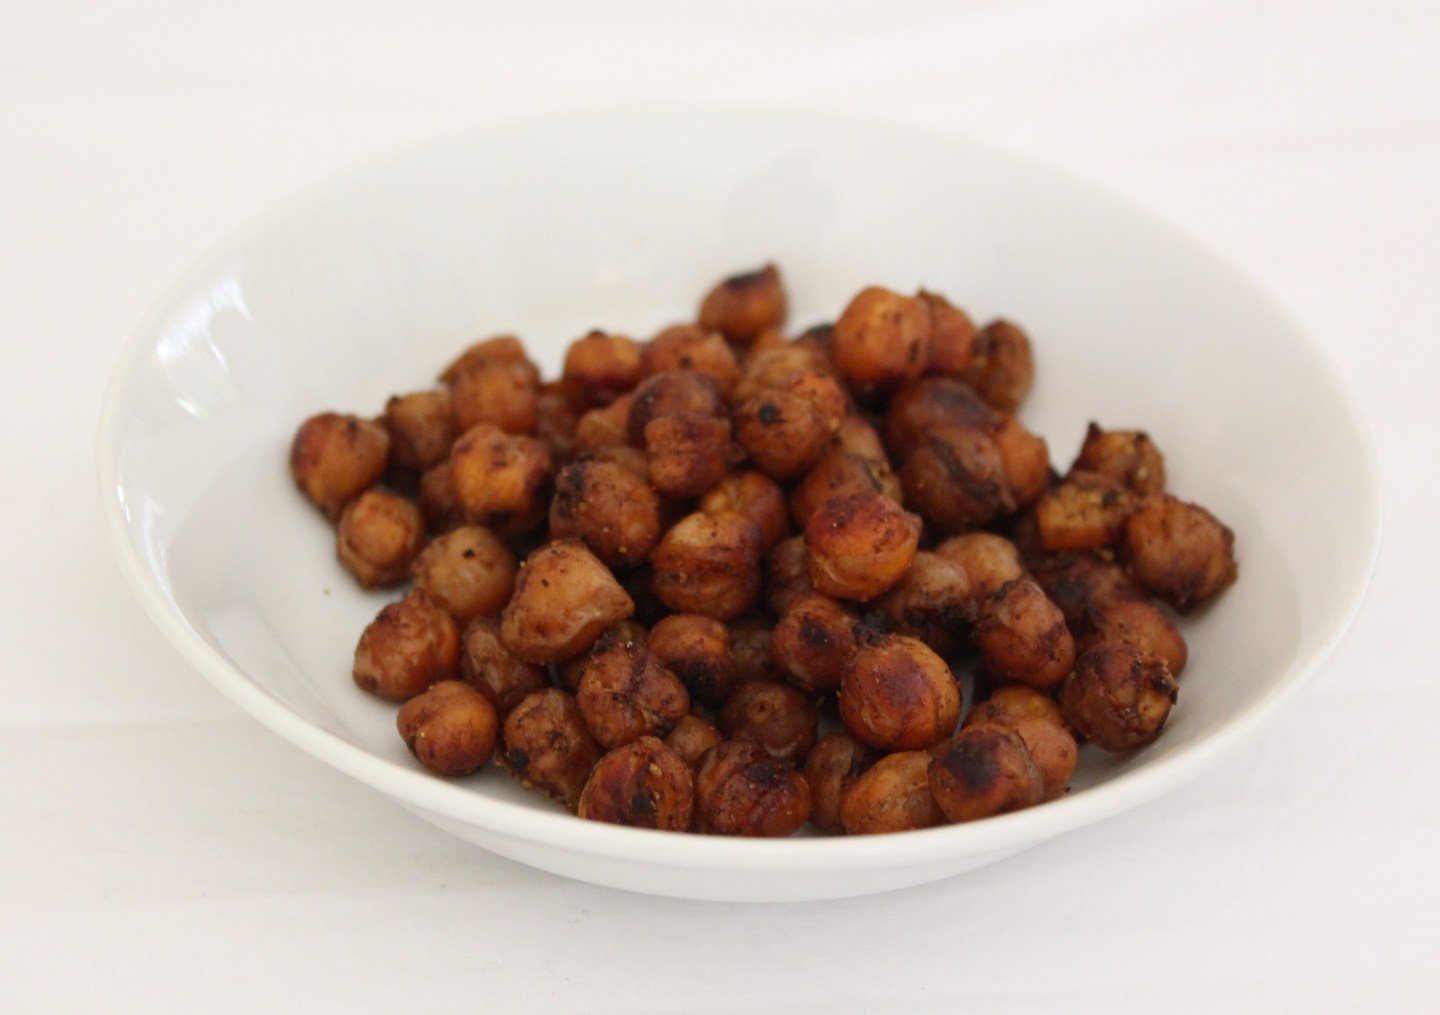 Balsamic Roasted Chickpeas